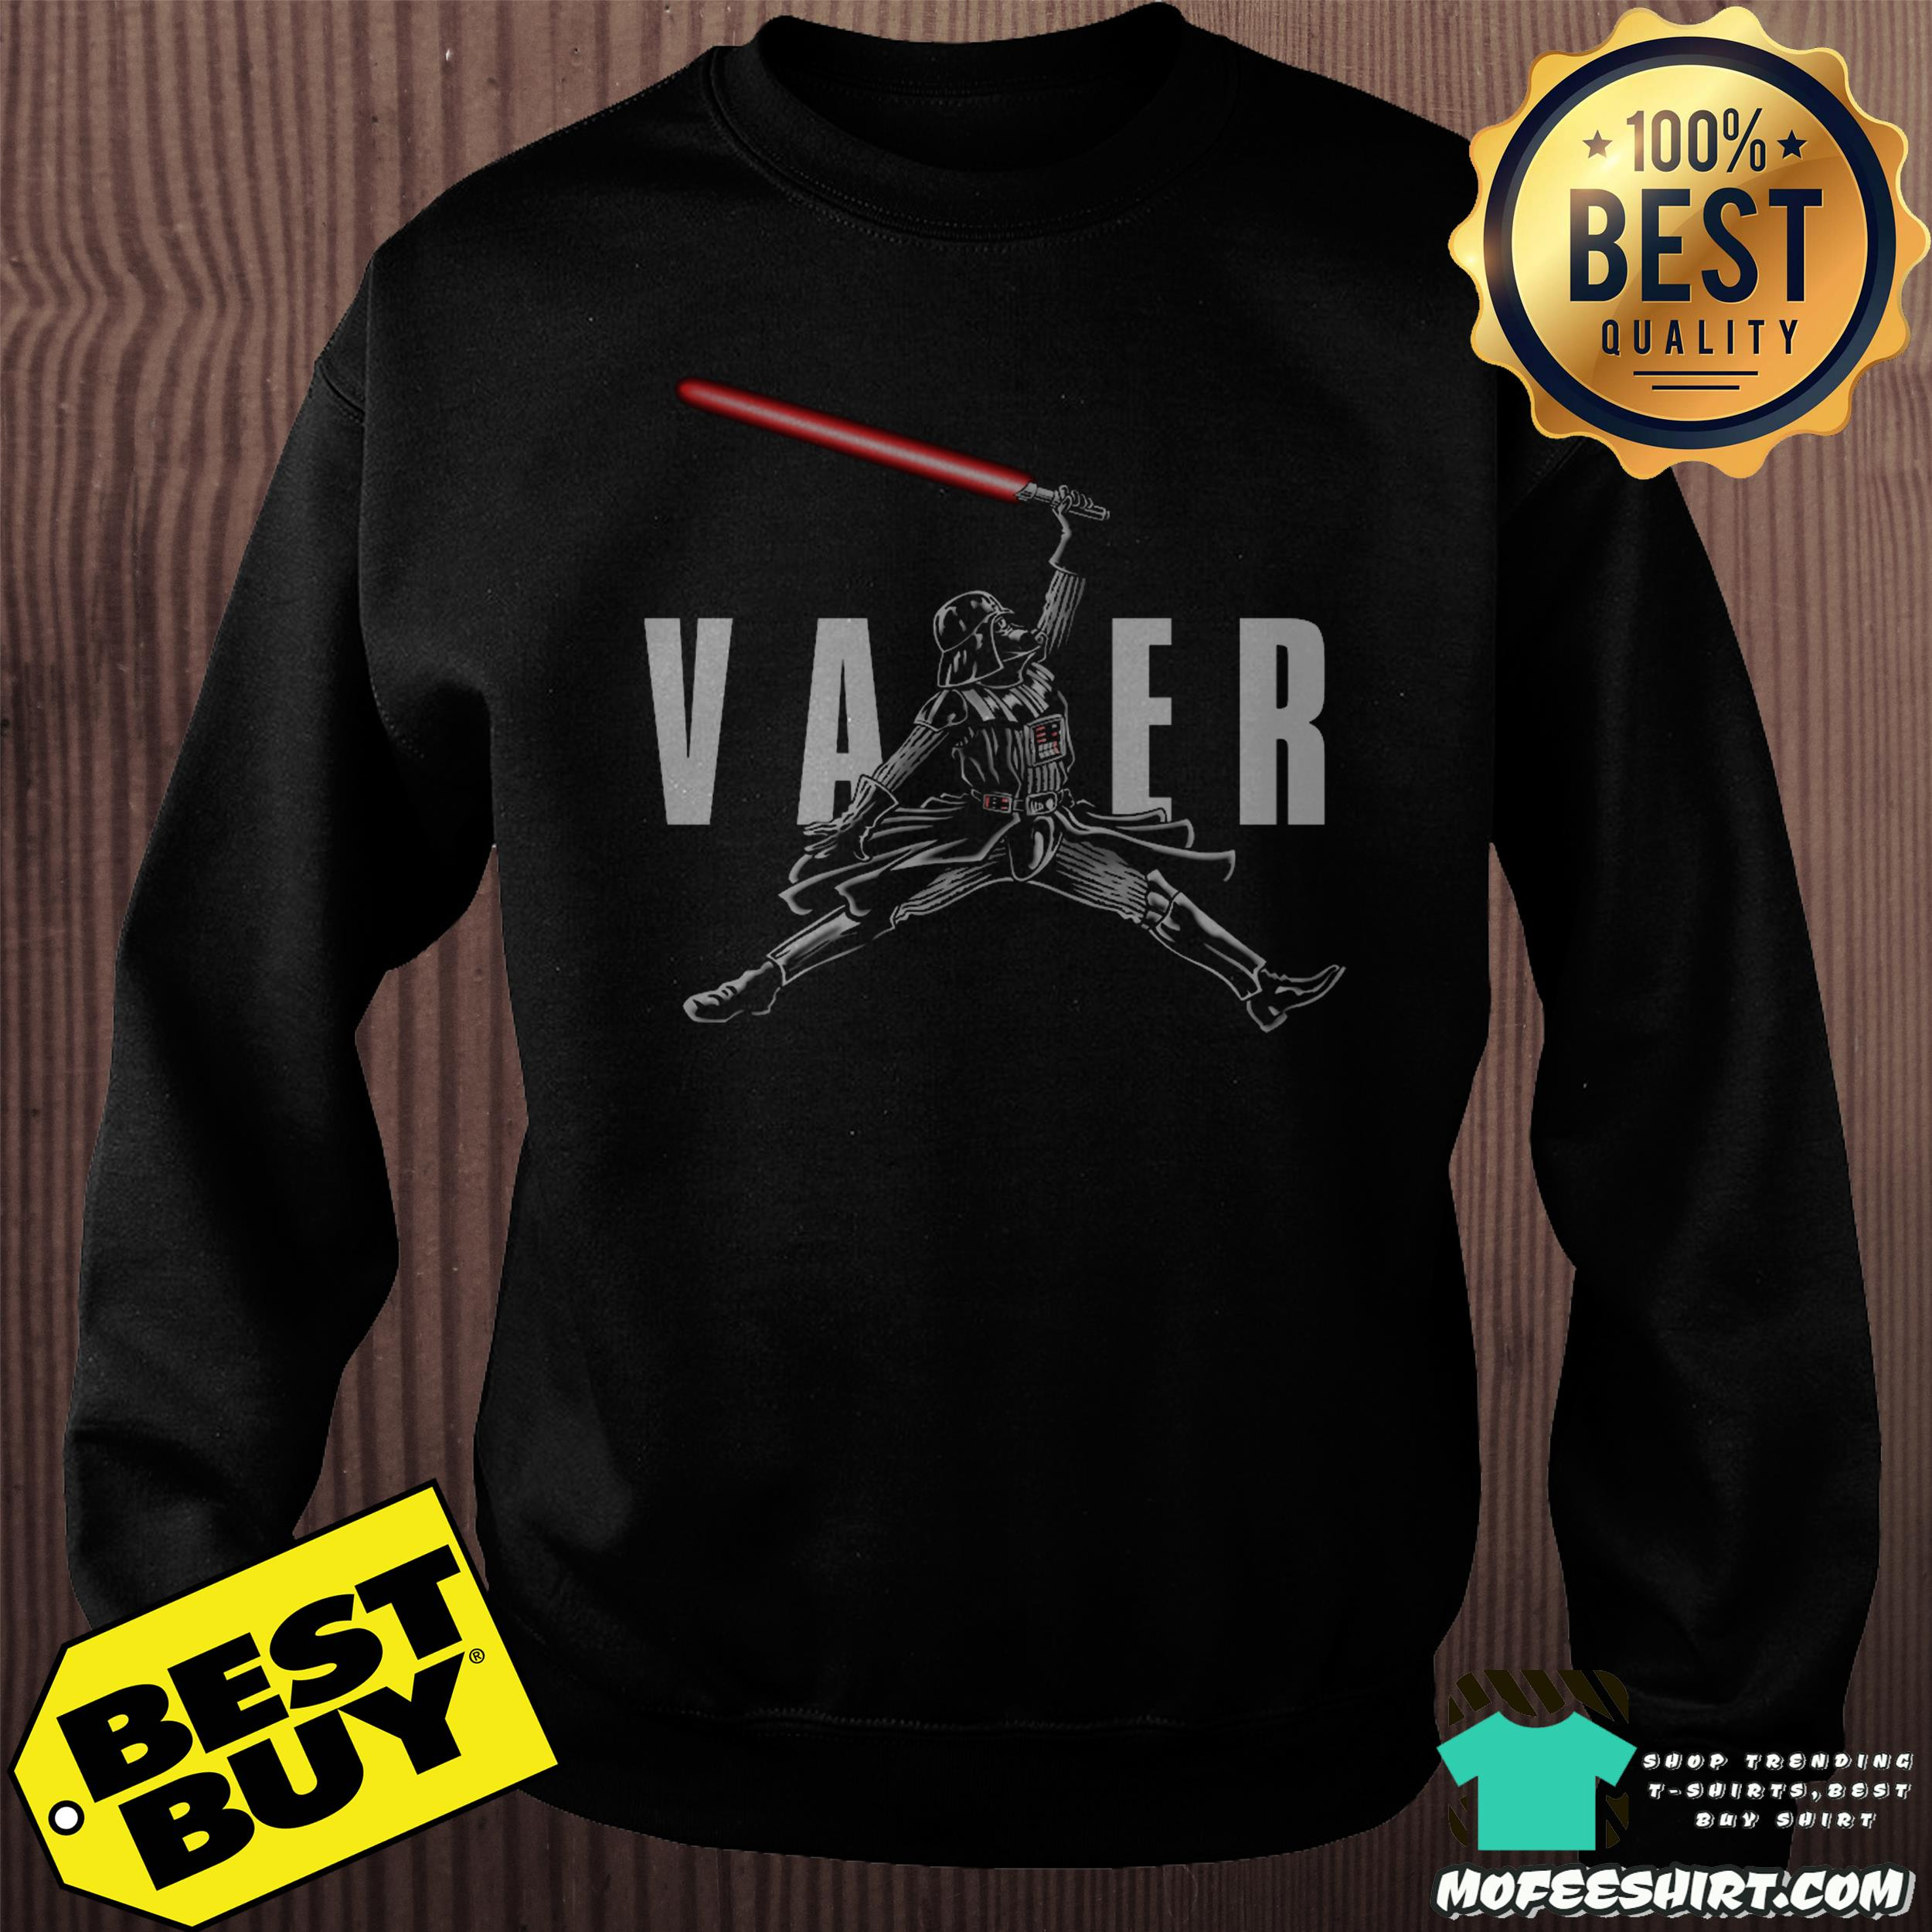 "air vader darth vader star war sweatshirt - ""Air Vader"" - Darth Vader Star War shirt"